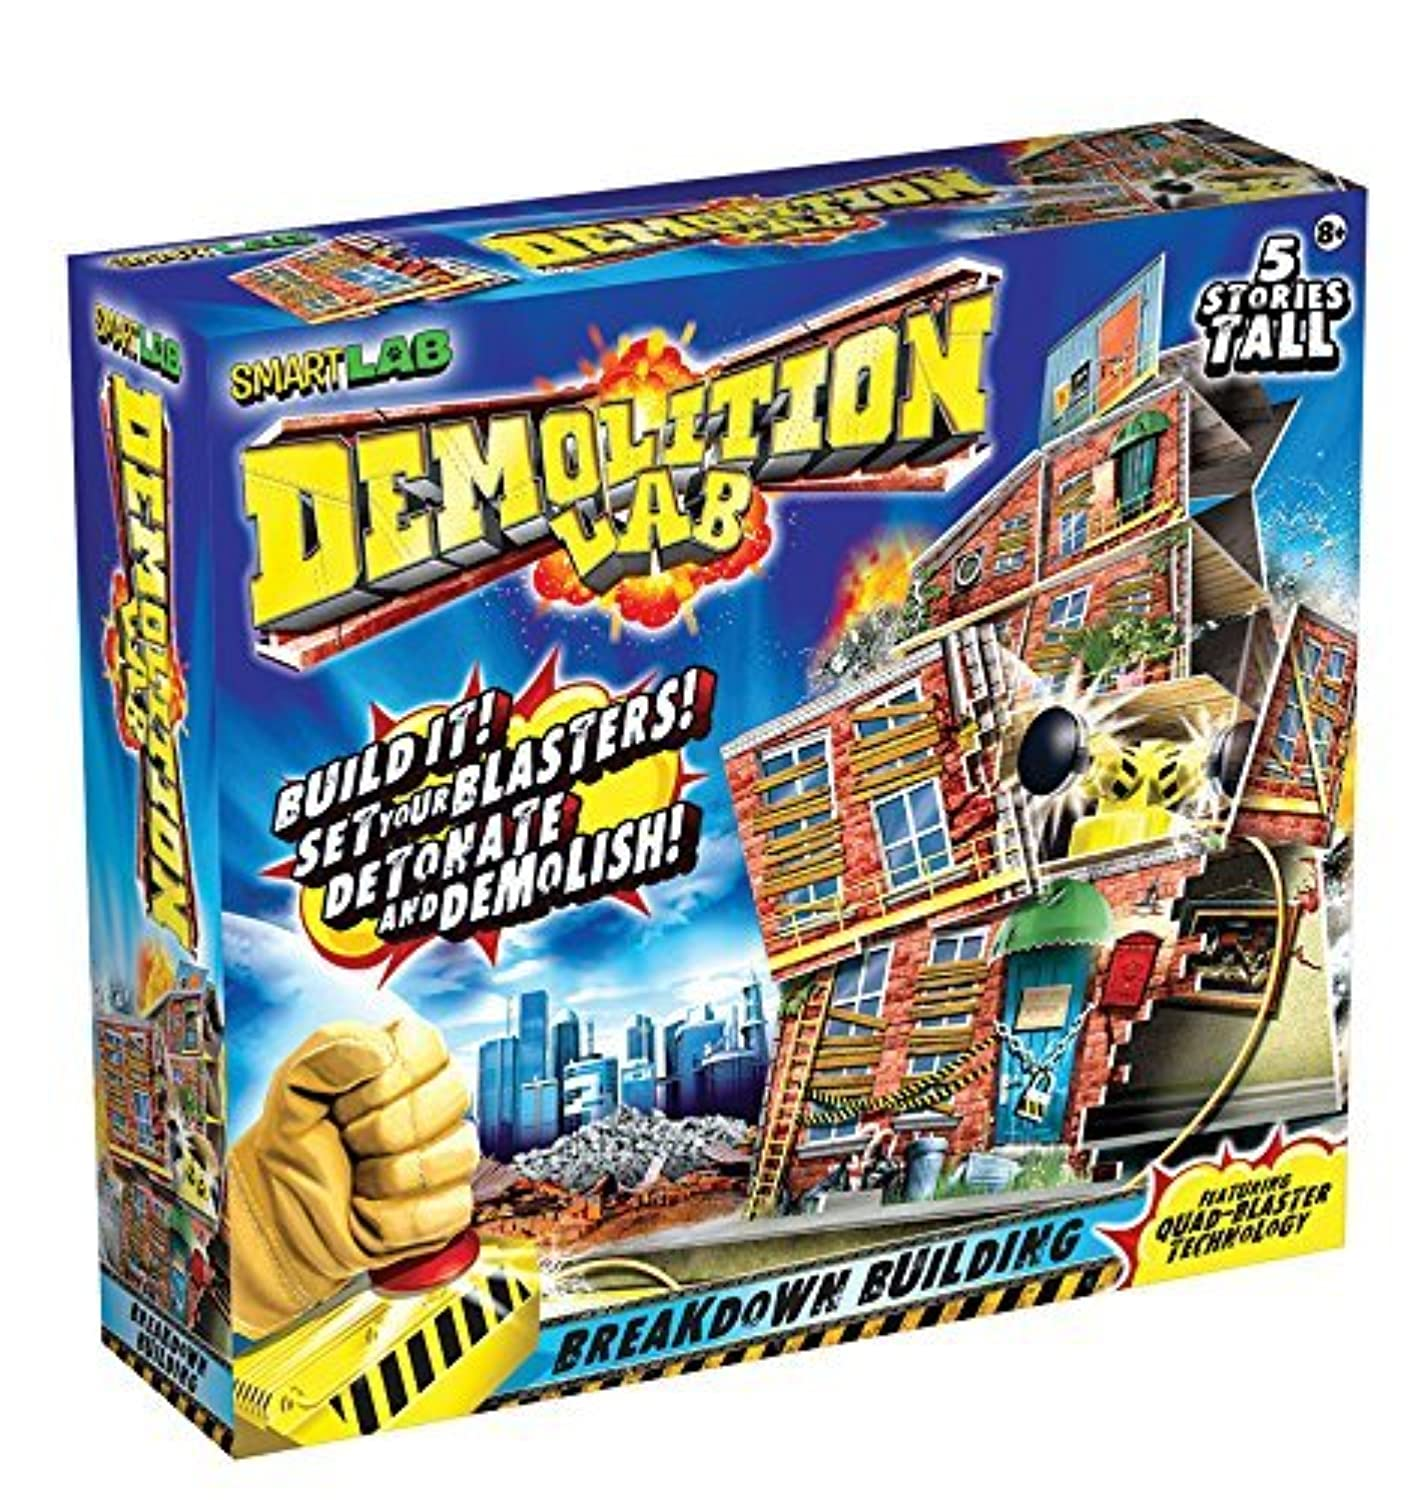 SmartLab Toys Demolition Lab: Breakdown Building [並行輸入品]